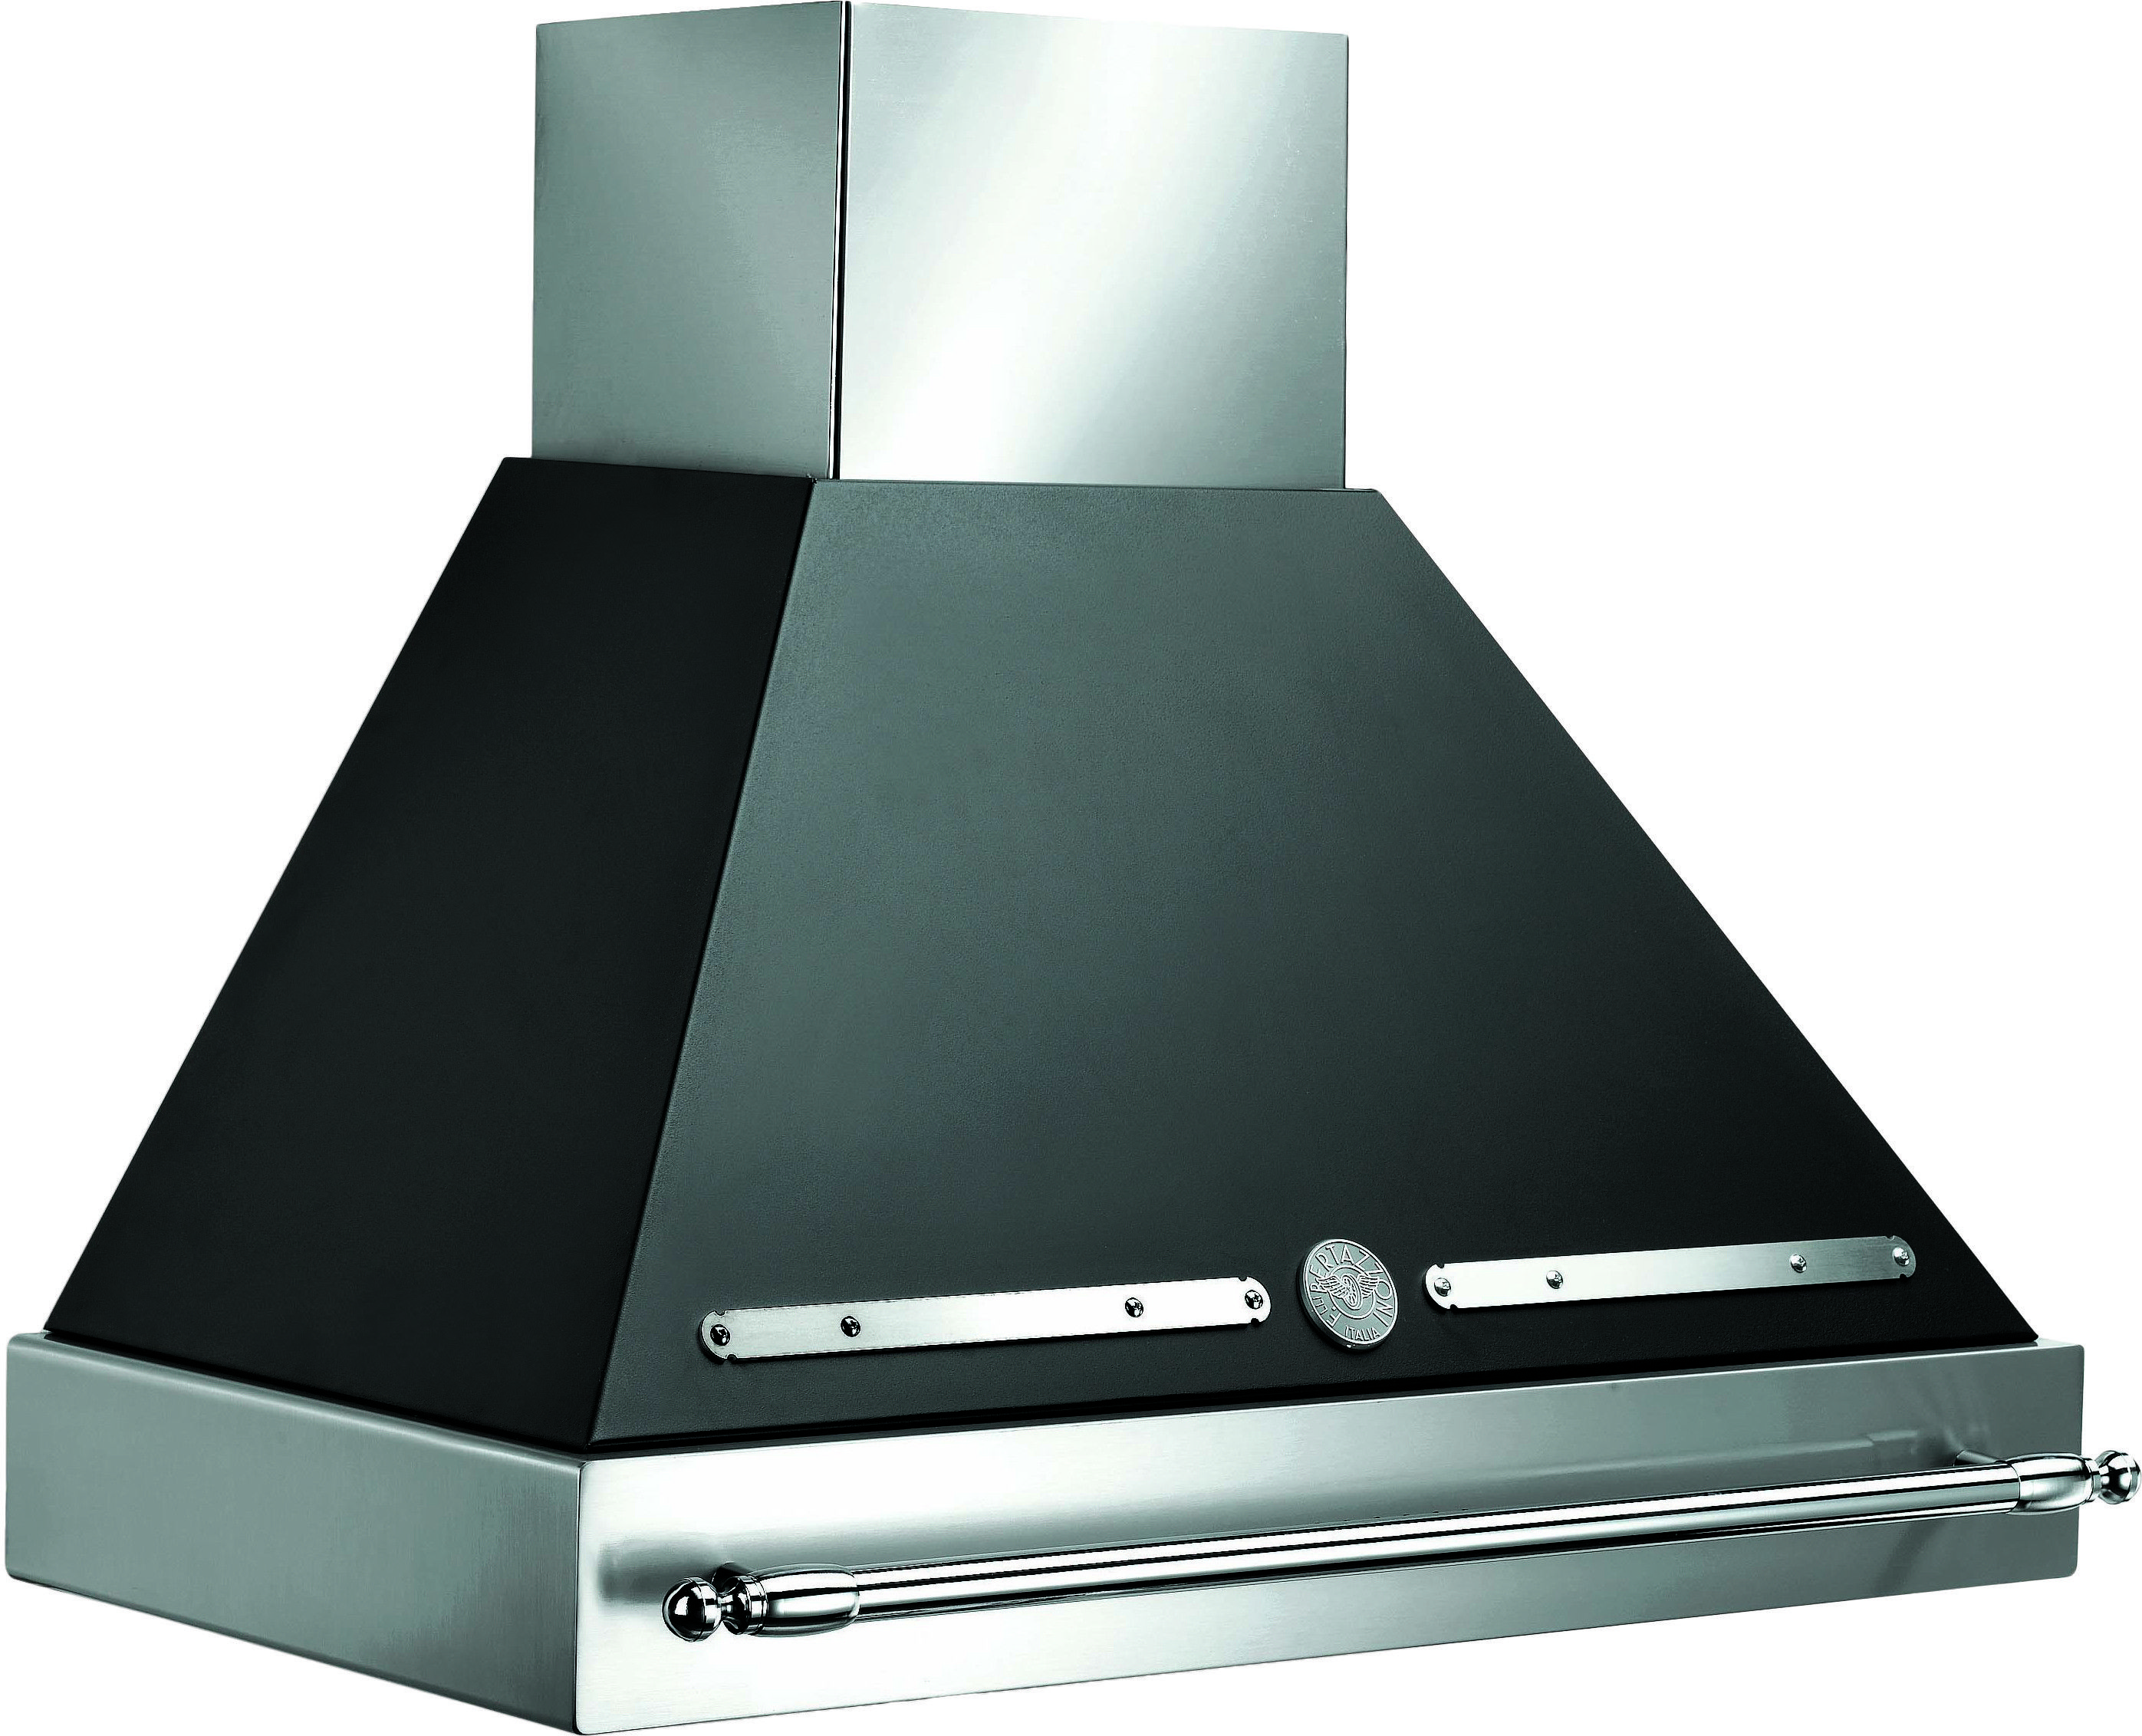 Bertazzoni K36herx14 36 Inch Wall Mount Hood With 600 Cfm Blower 3 Speed Settings 2 Halogen Lights And Dishwasher Safe Stainless Steel Baffle Filters 36 Wid Range Hood Wall Mount Range Hood Stainless Range Hood